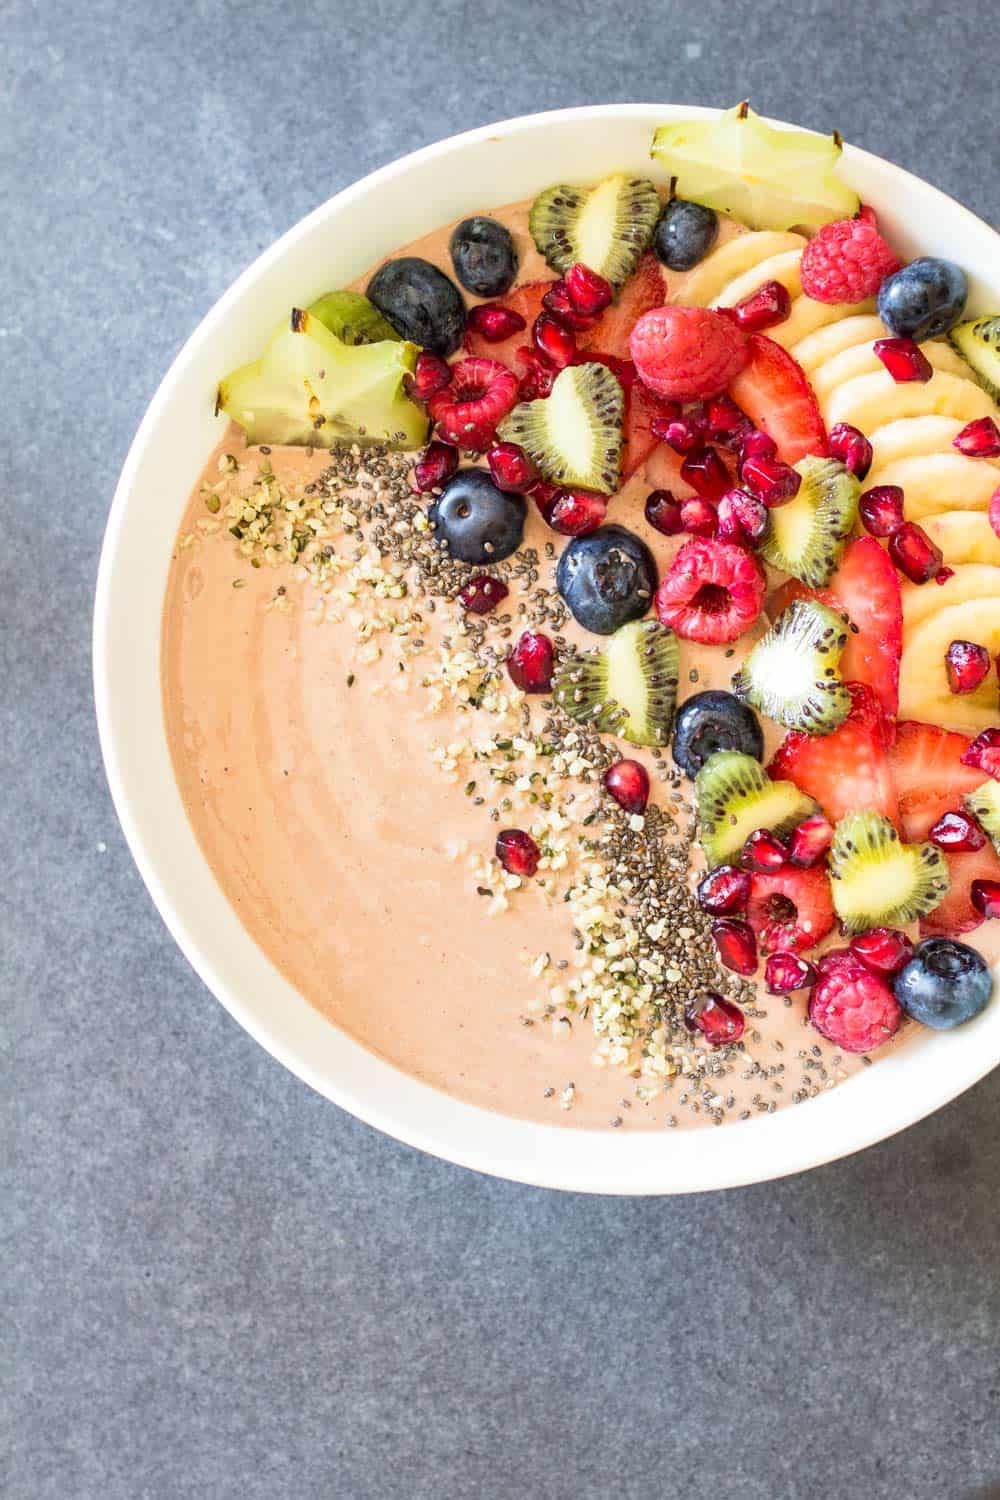 Top view of Chocolate Smoothie Bowl with chopped fresh fruit and seeds.